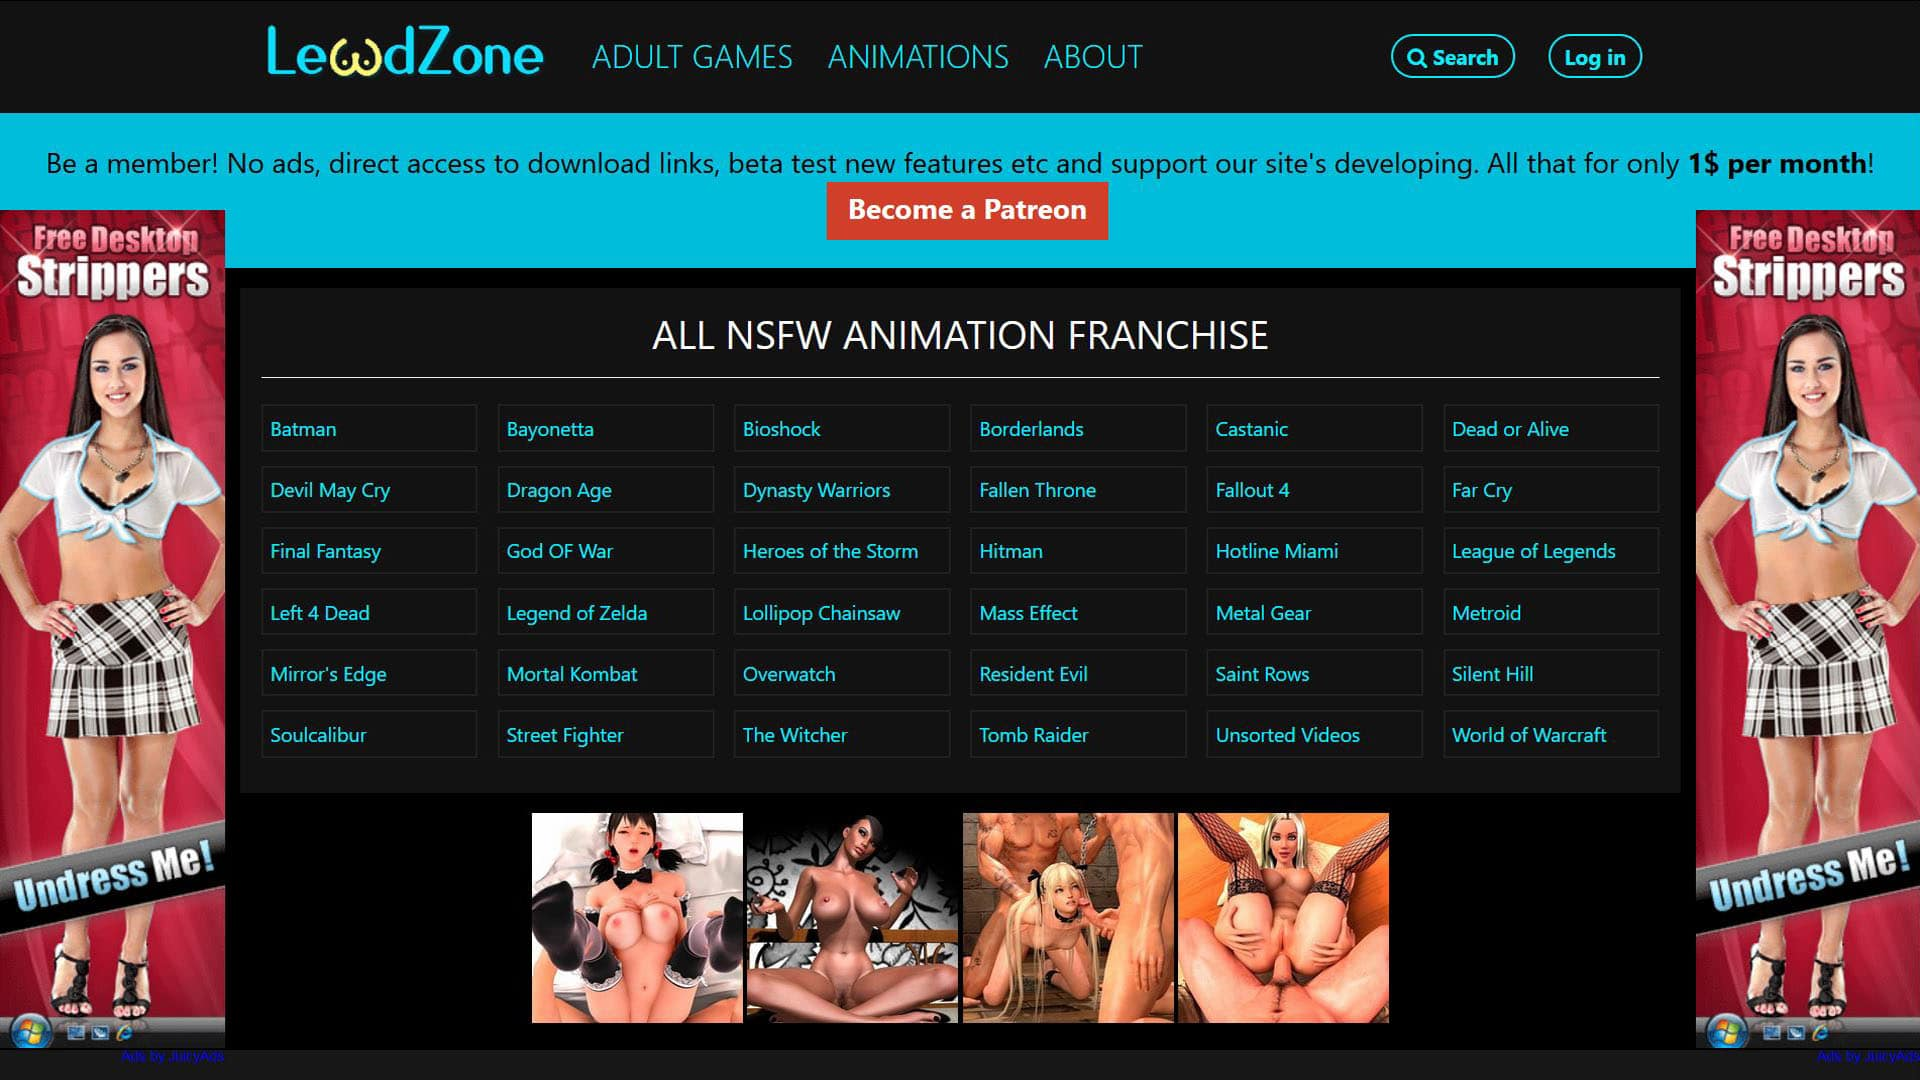 Lewdzone Franchise List